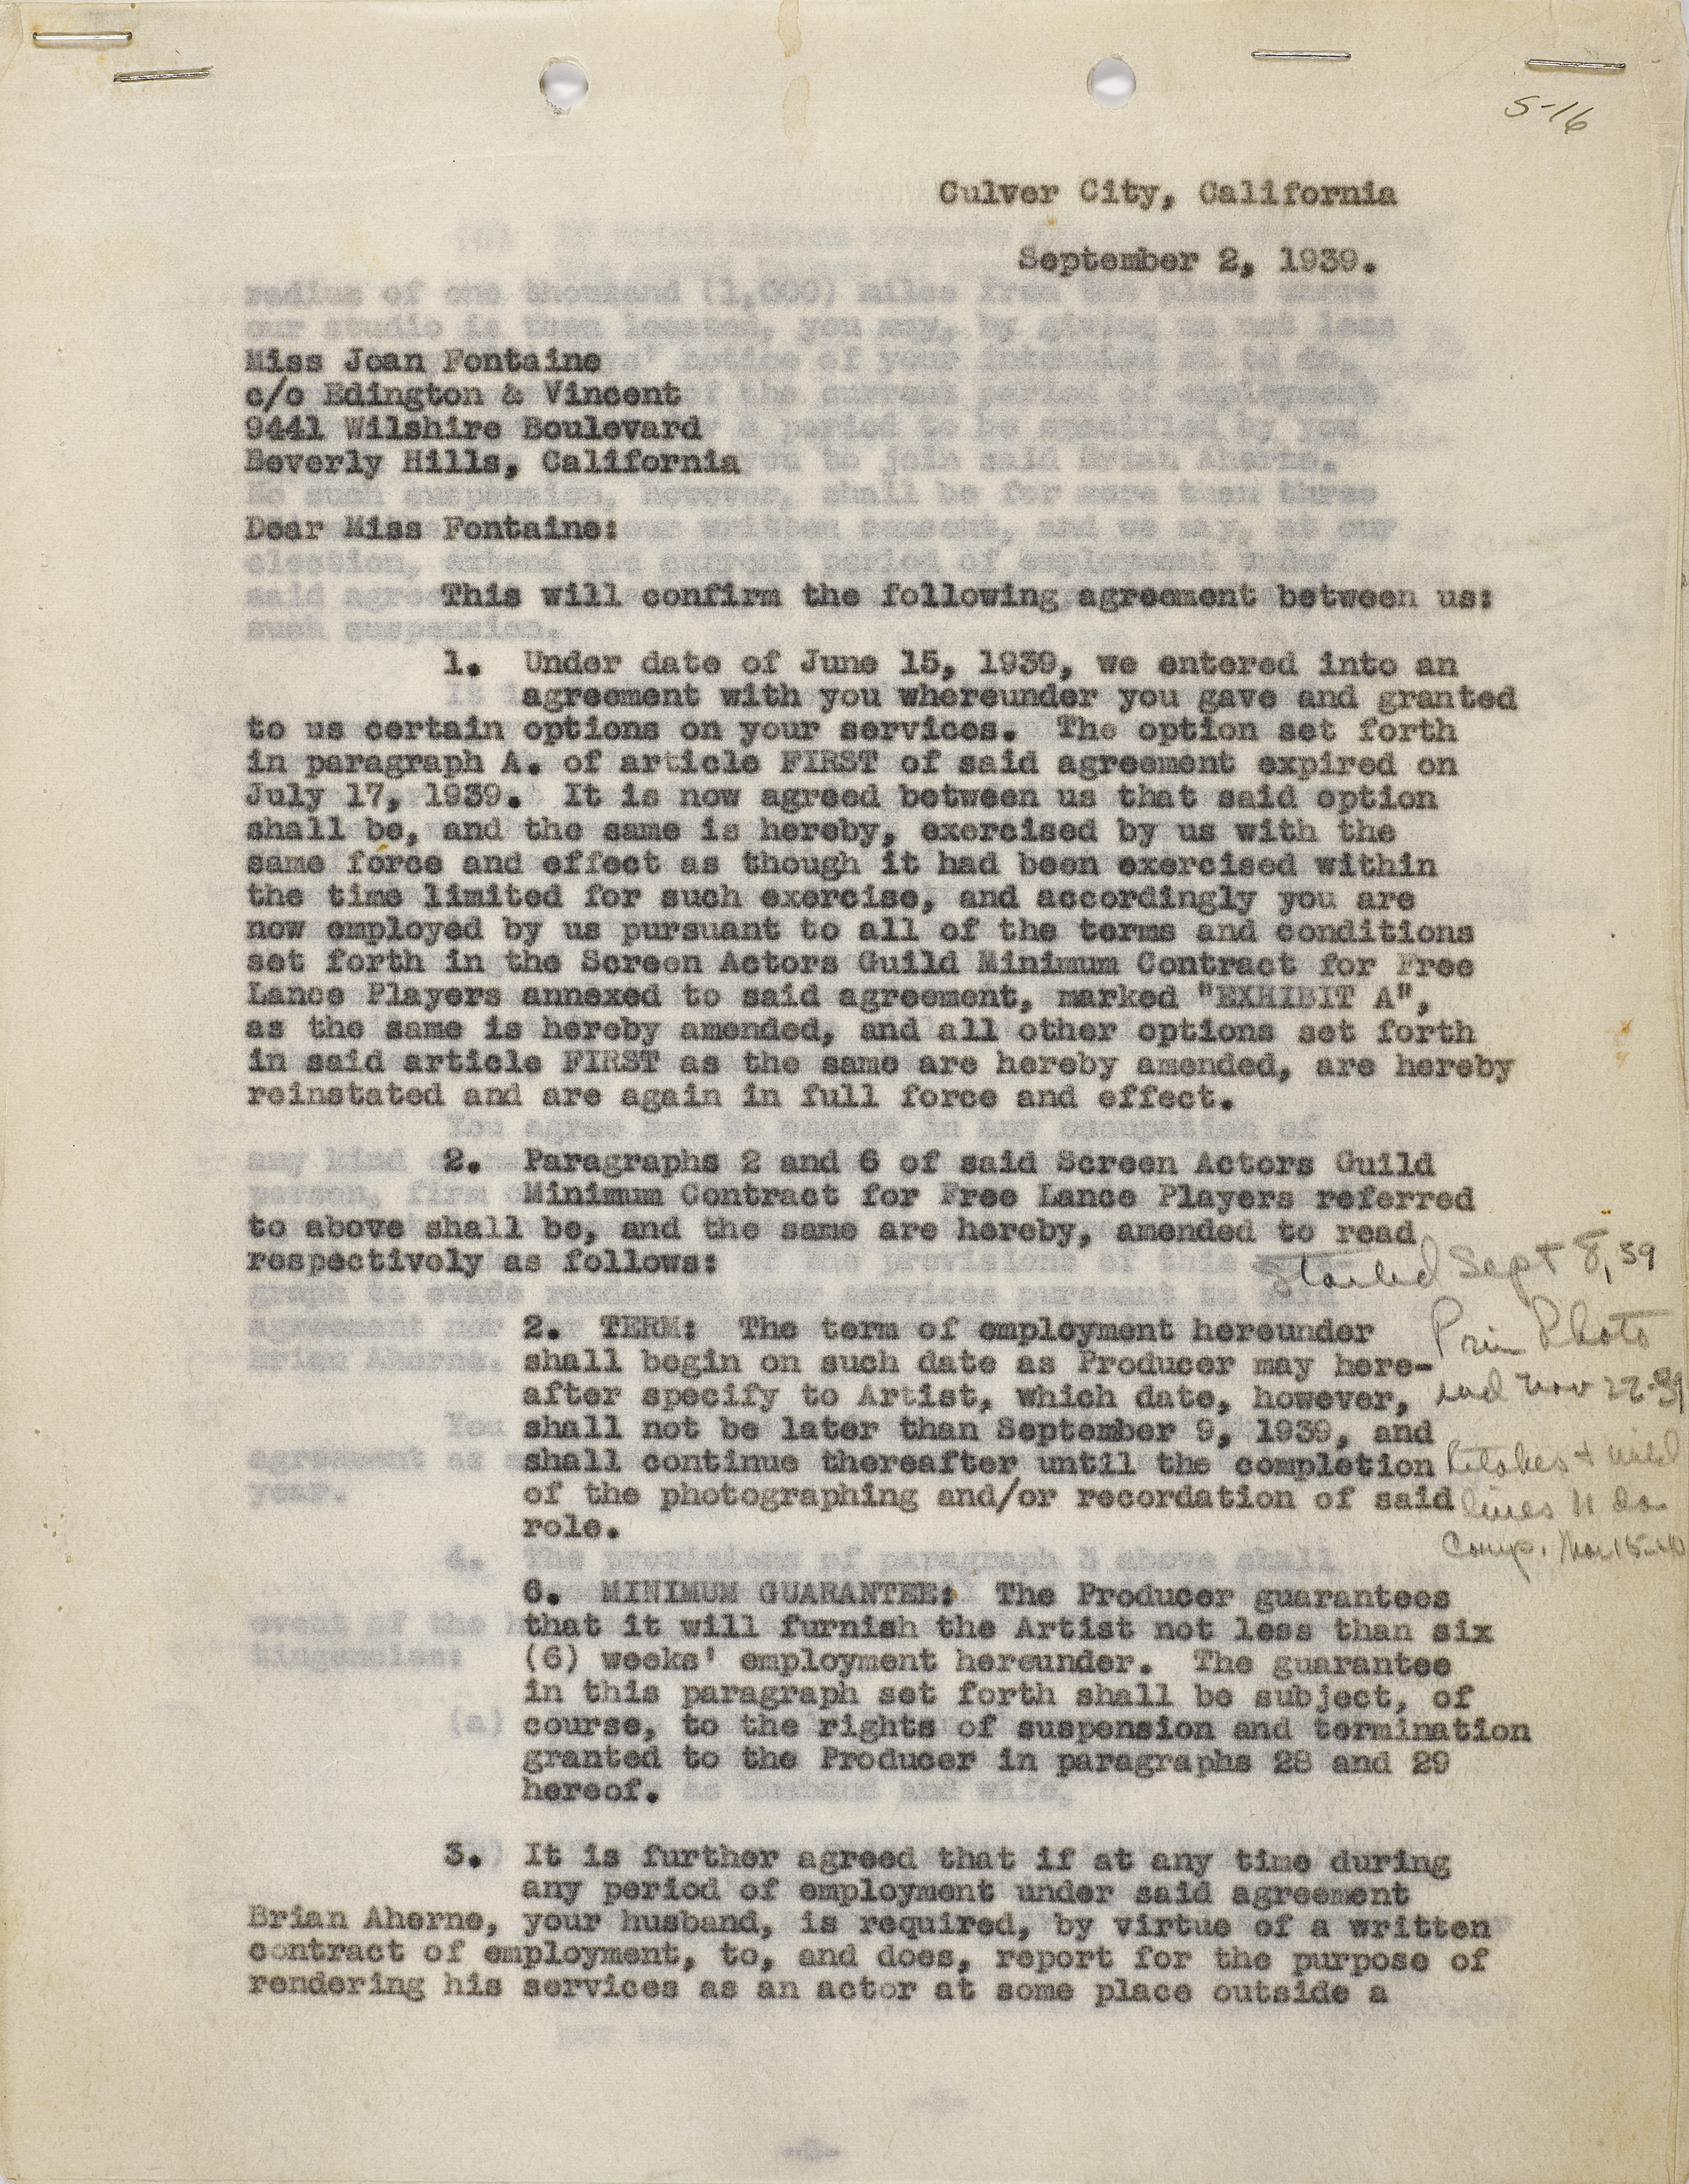 A Joan Fontaine contract with Selznick International Pictures